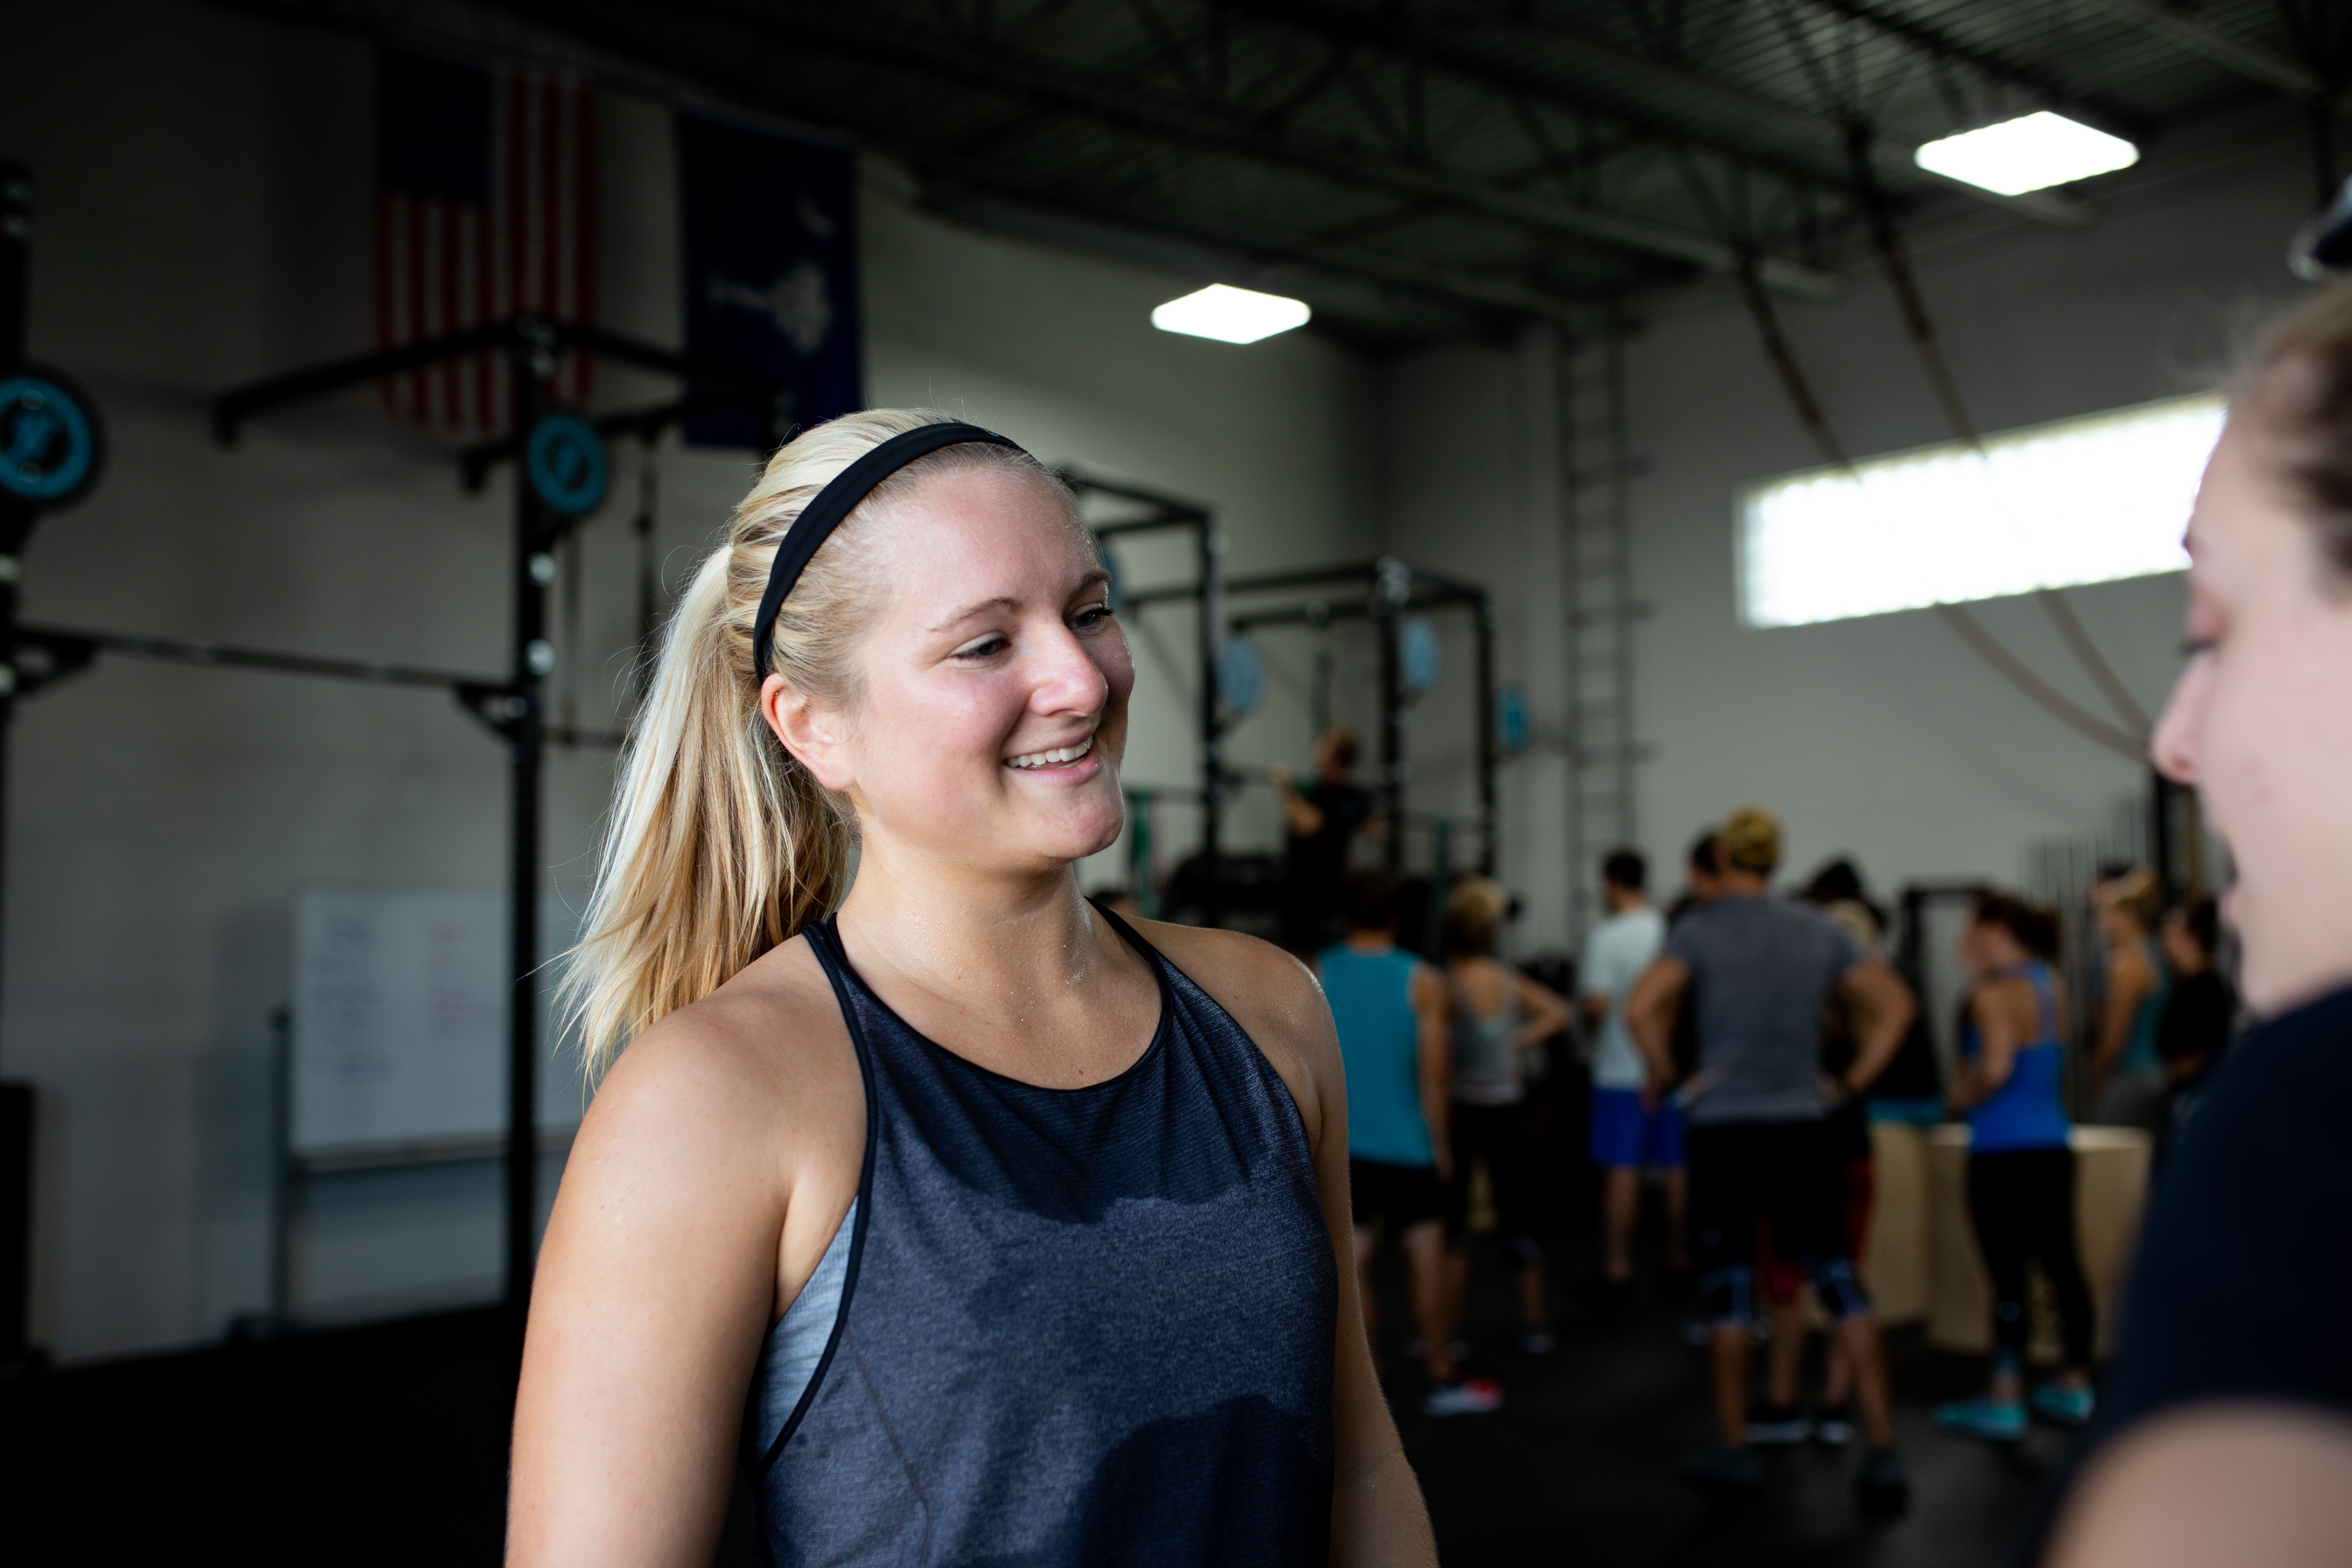 My Rhapsody: From MUSC to laughing her way to a 6-pack, Rachel finds her happy place at Rhapsody